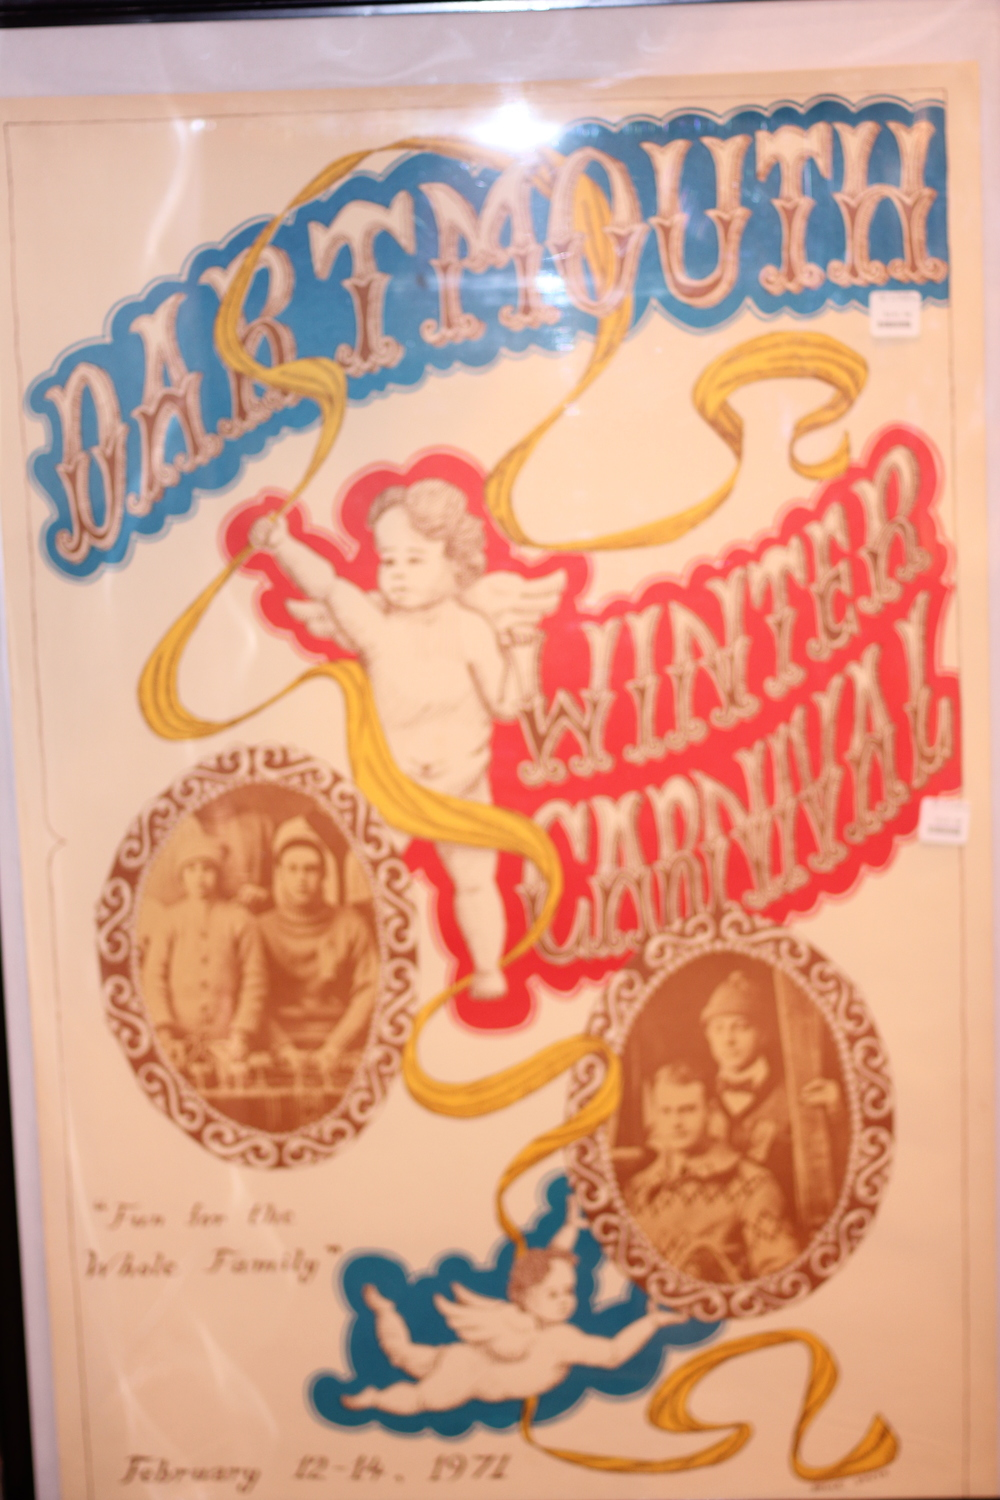 Dartmouth Winter Carnival 1971